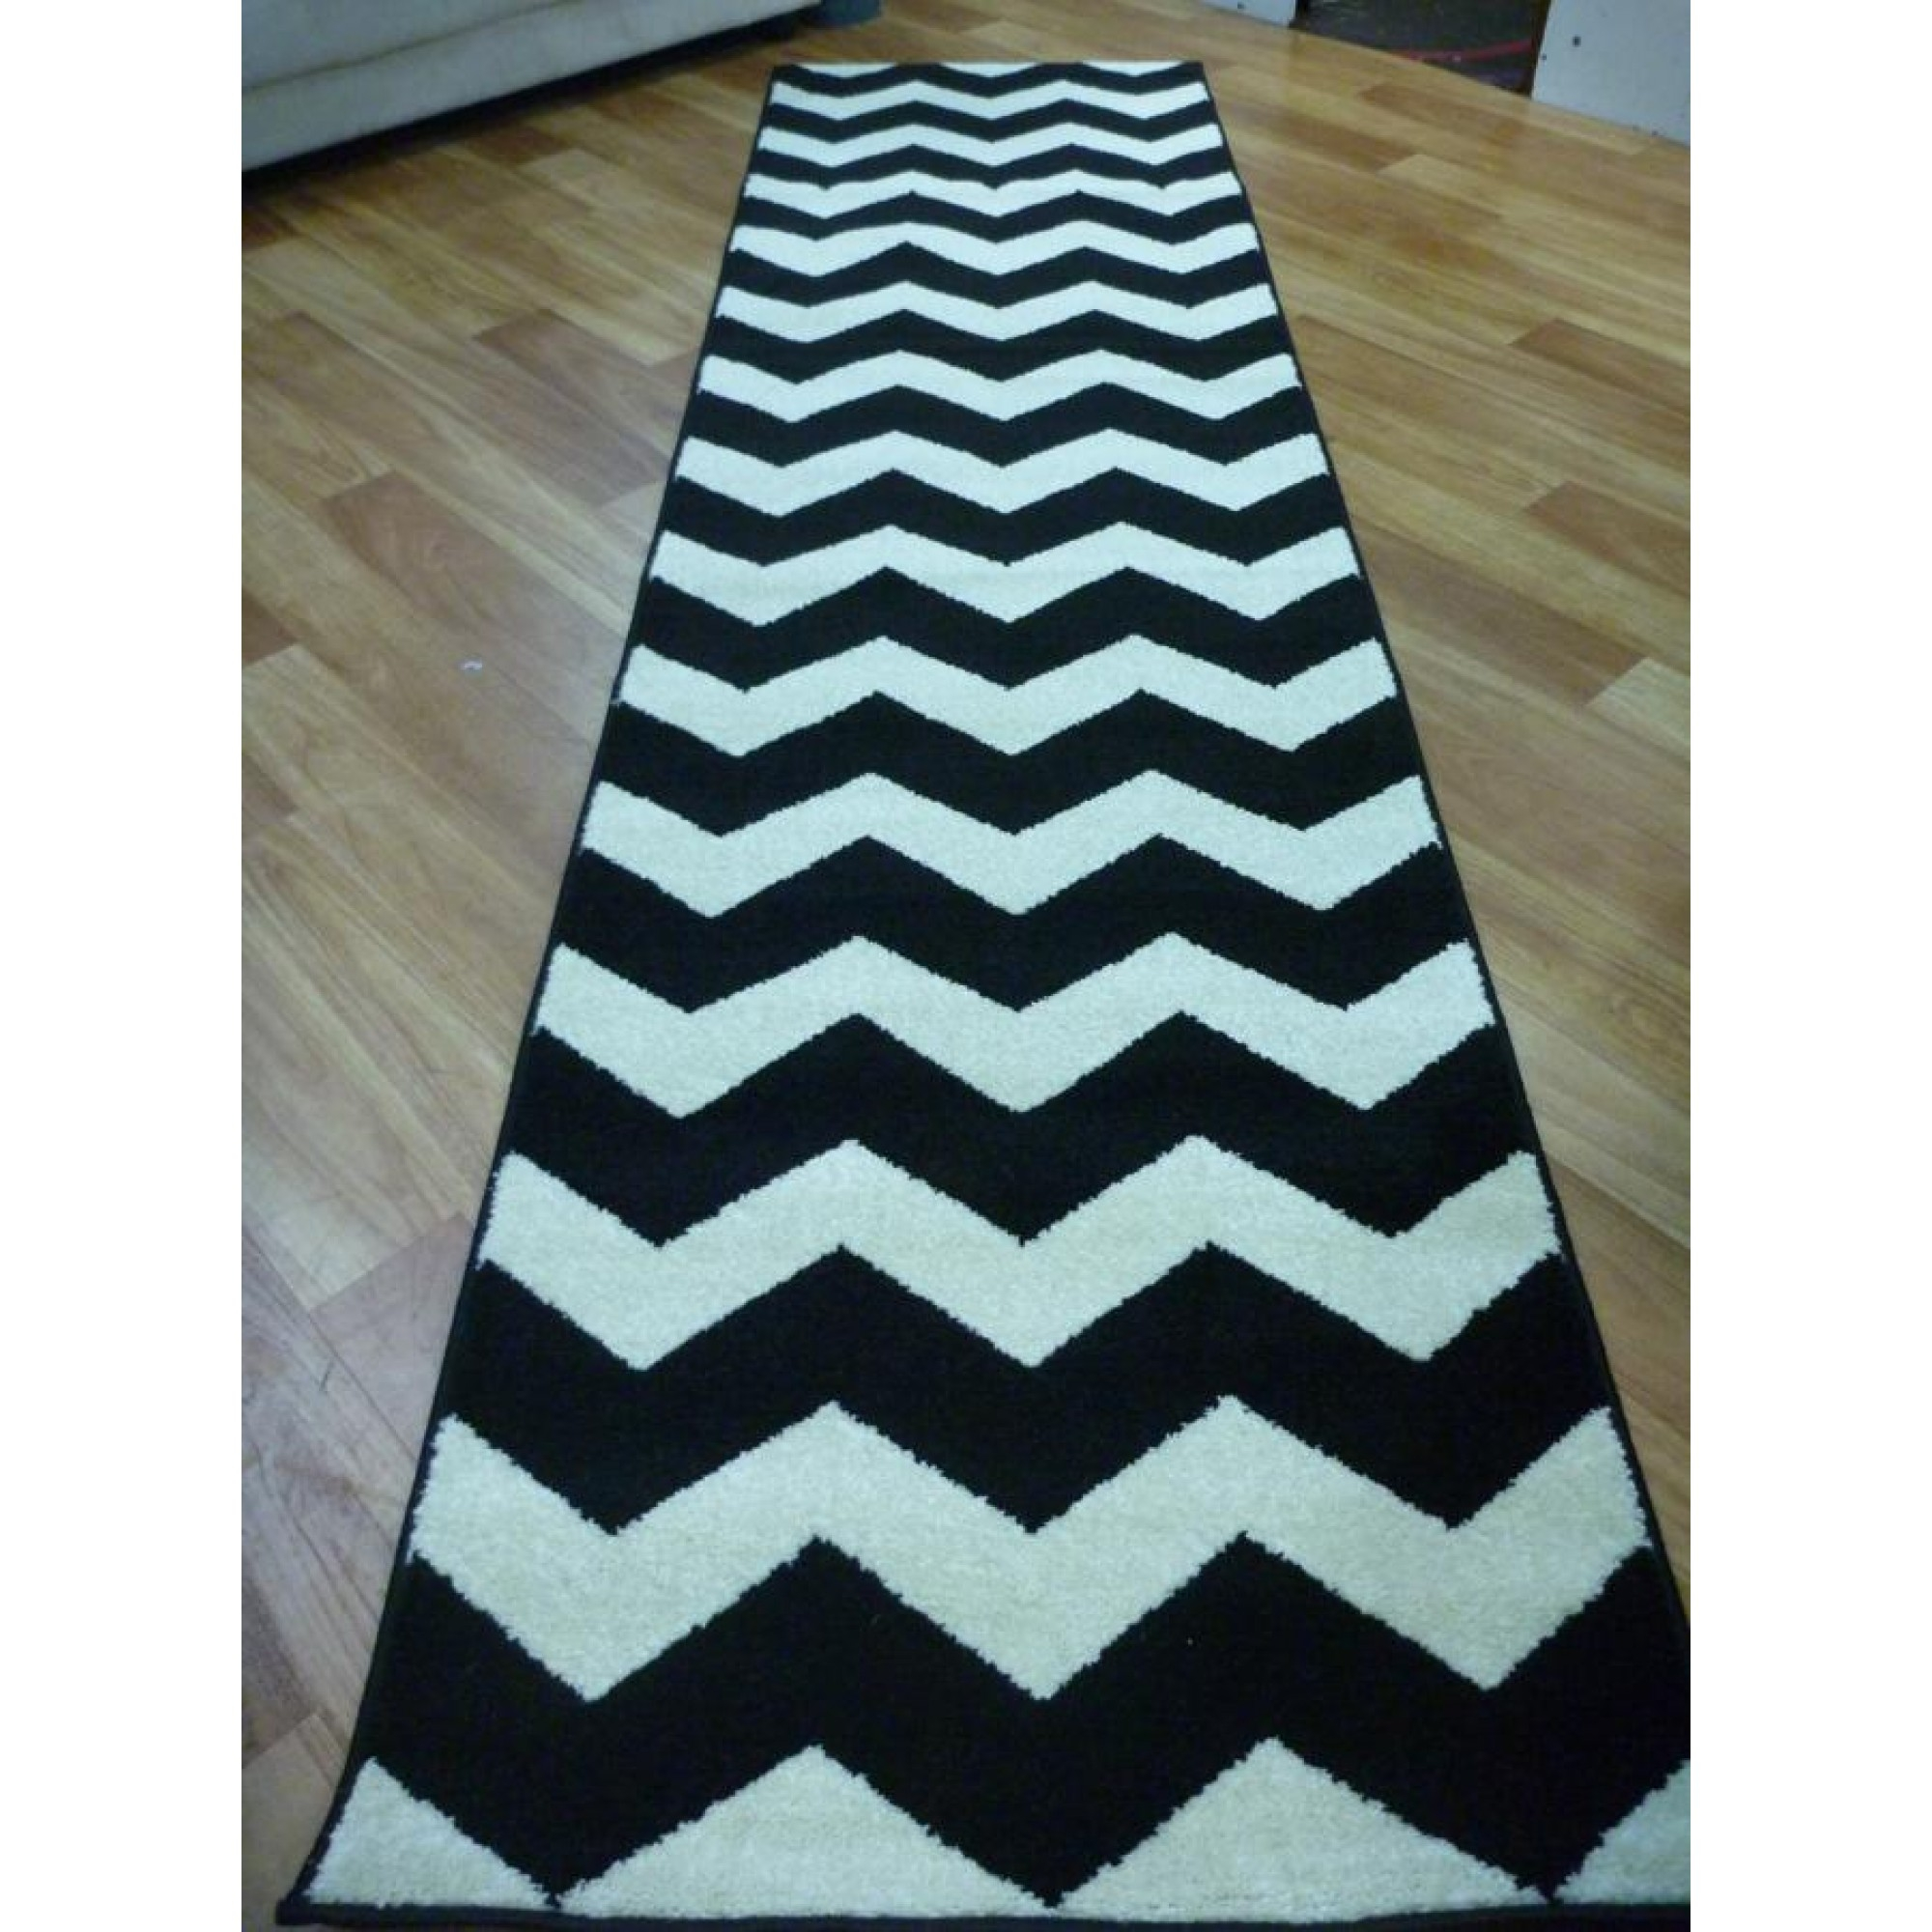 Chevron Modern Hallway Runners Free Shipping Australia Wide Kids Within Contemporary Runner Rugs For Hallway (#4 of 20)